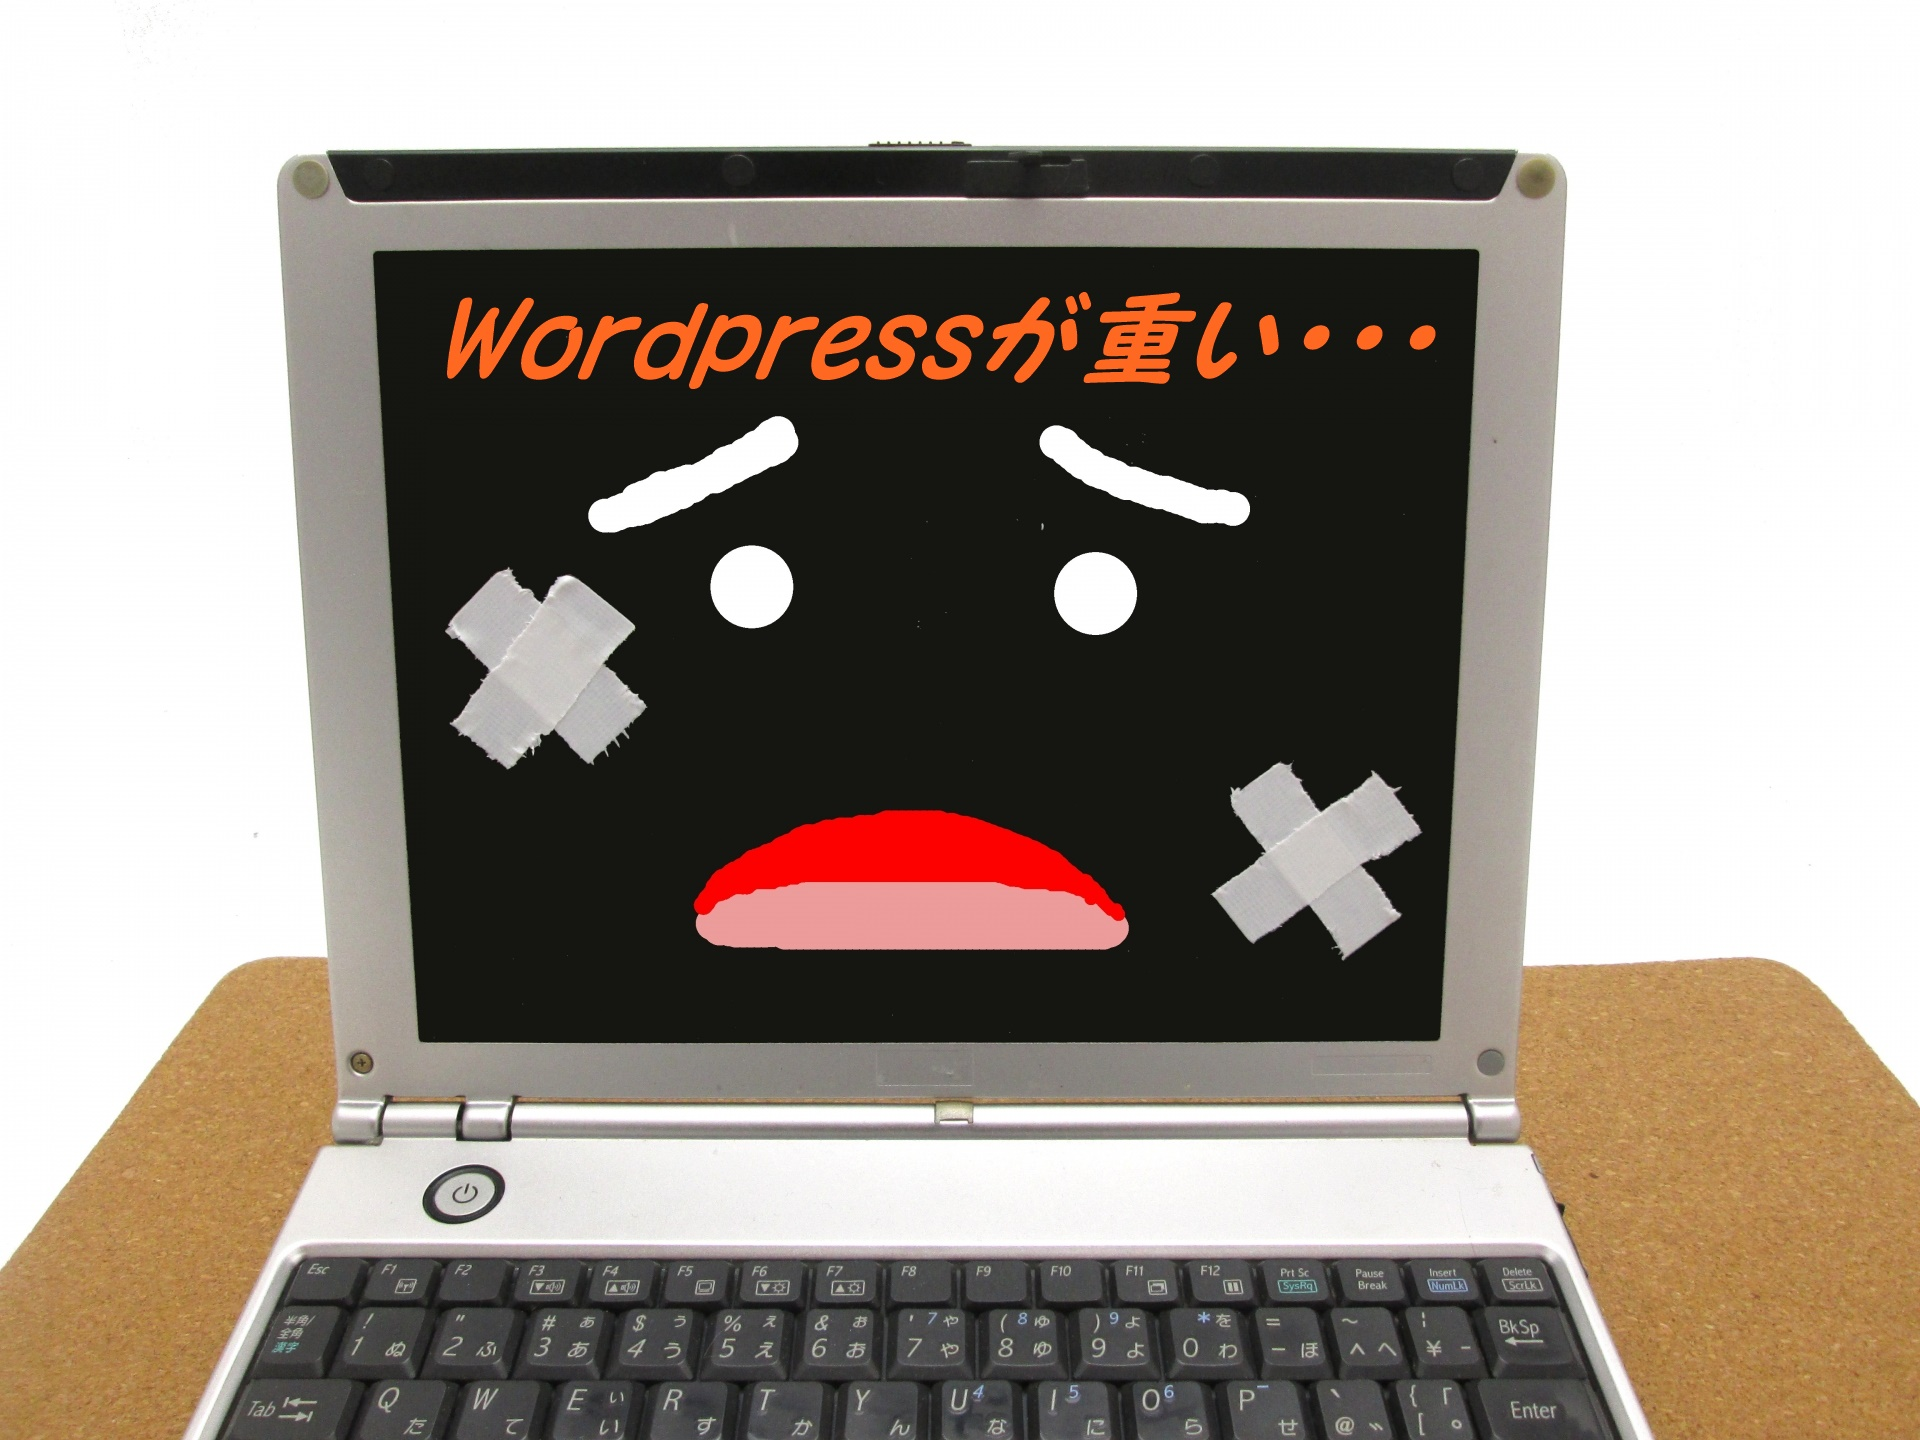 Wordpressが重い